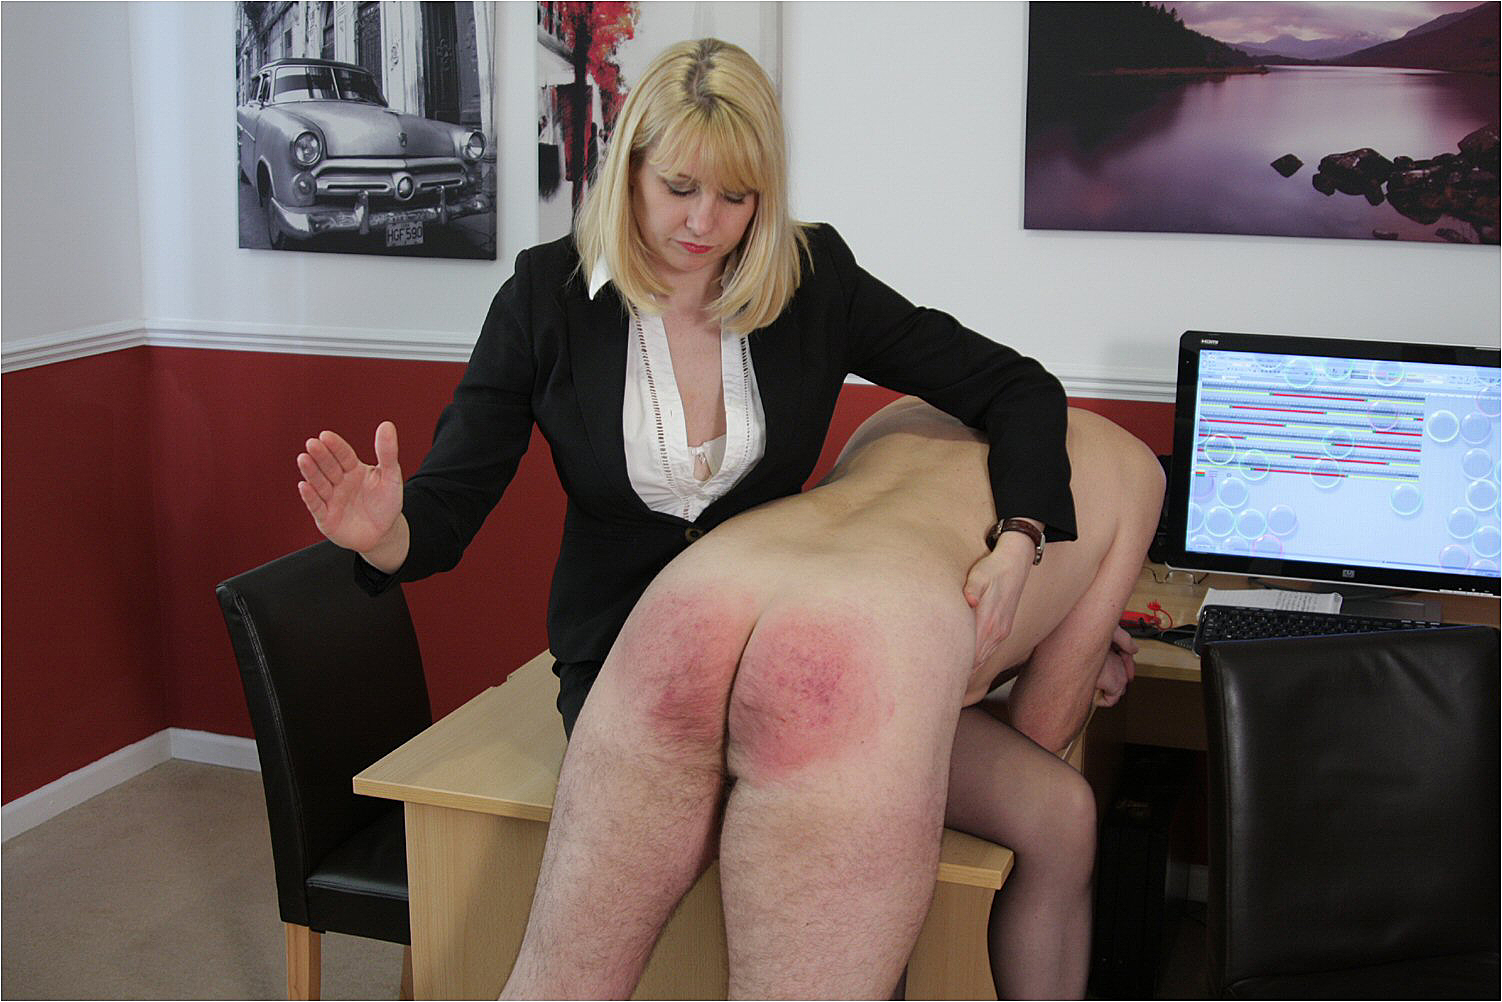 Ladies who spank men remarkable, this